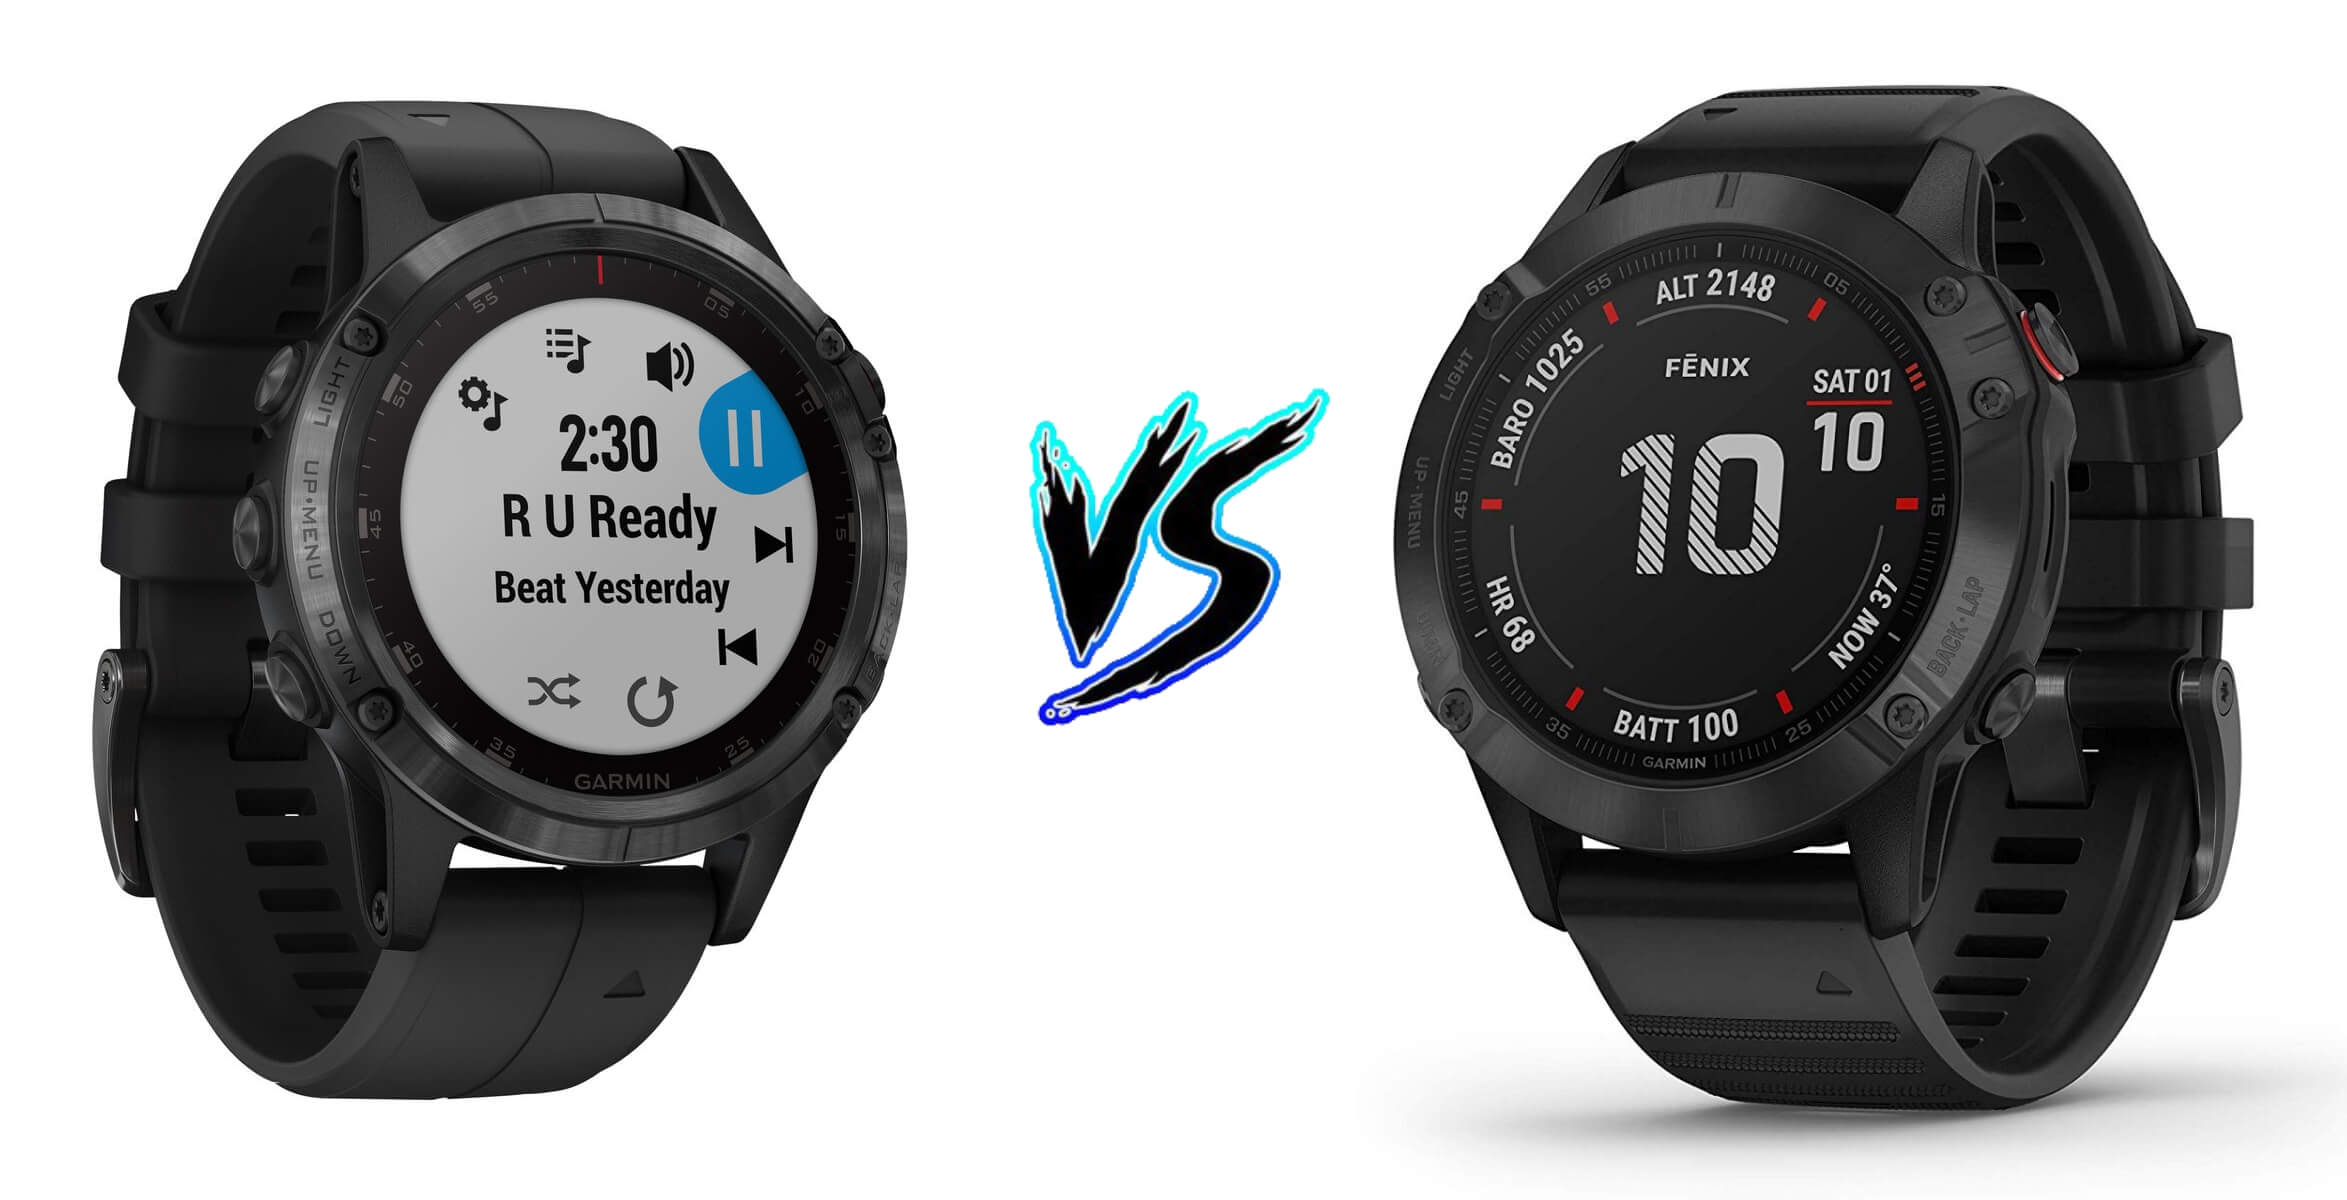 Garmin Fenix 5 Plus vs Garmin Fenix 6 Pro